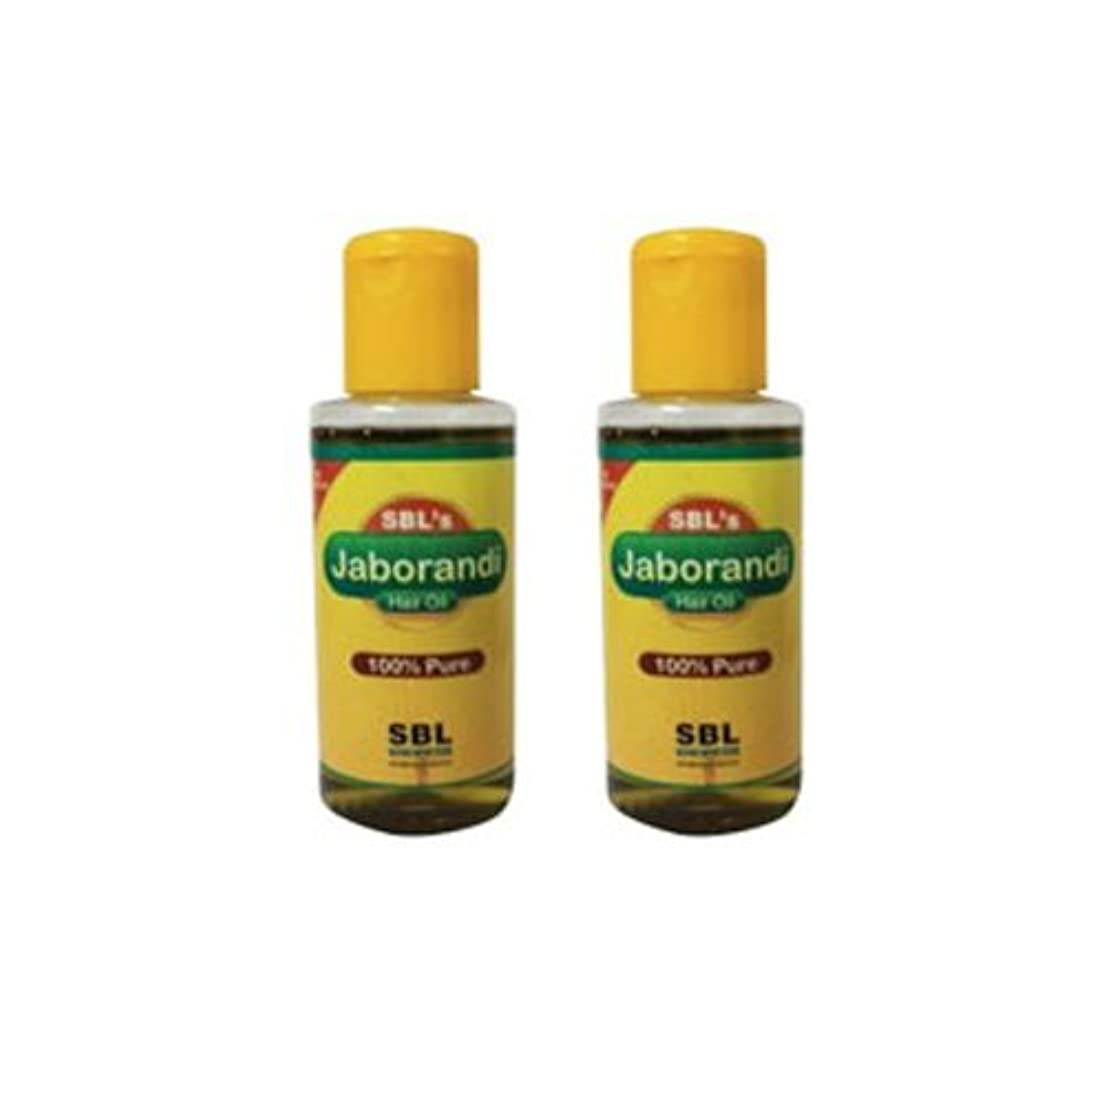 語光のむしろ2 x Jaborandi Hair Oil. Shipping Only By - USPS / FedEX by SBL